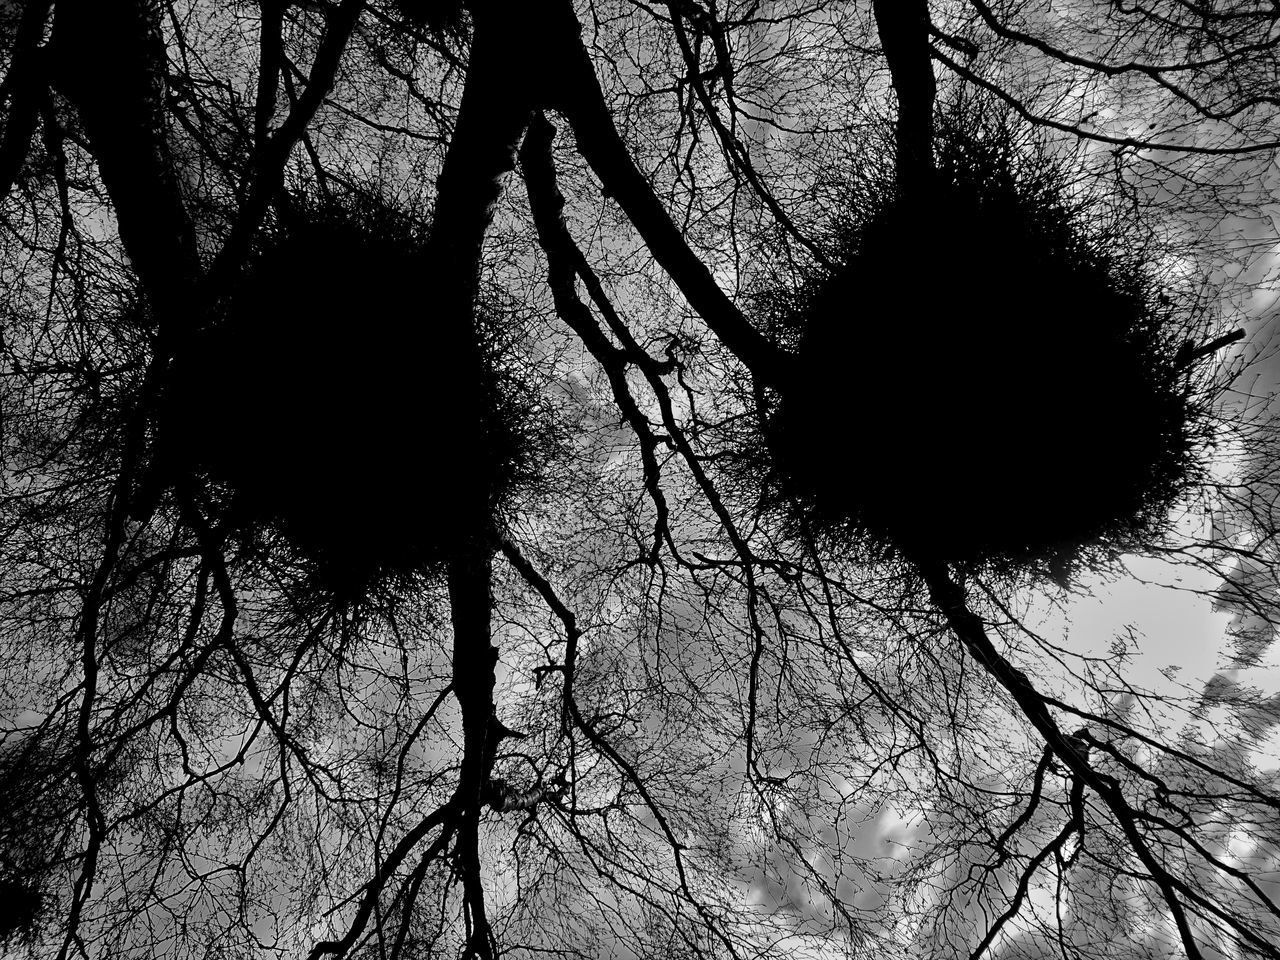 Two Nests // Tree Low Angle View Sky Nature Silhouette Branch No People Growth Beauty In Nature Day Outdoors Close-up Stock Image EyeEm Best Edits EyeEmbestshots Eyeem Market Eyeemphotography Walking Wood Birds Nest Nest Look Up And Thrive Nature Tree Black And White